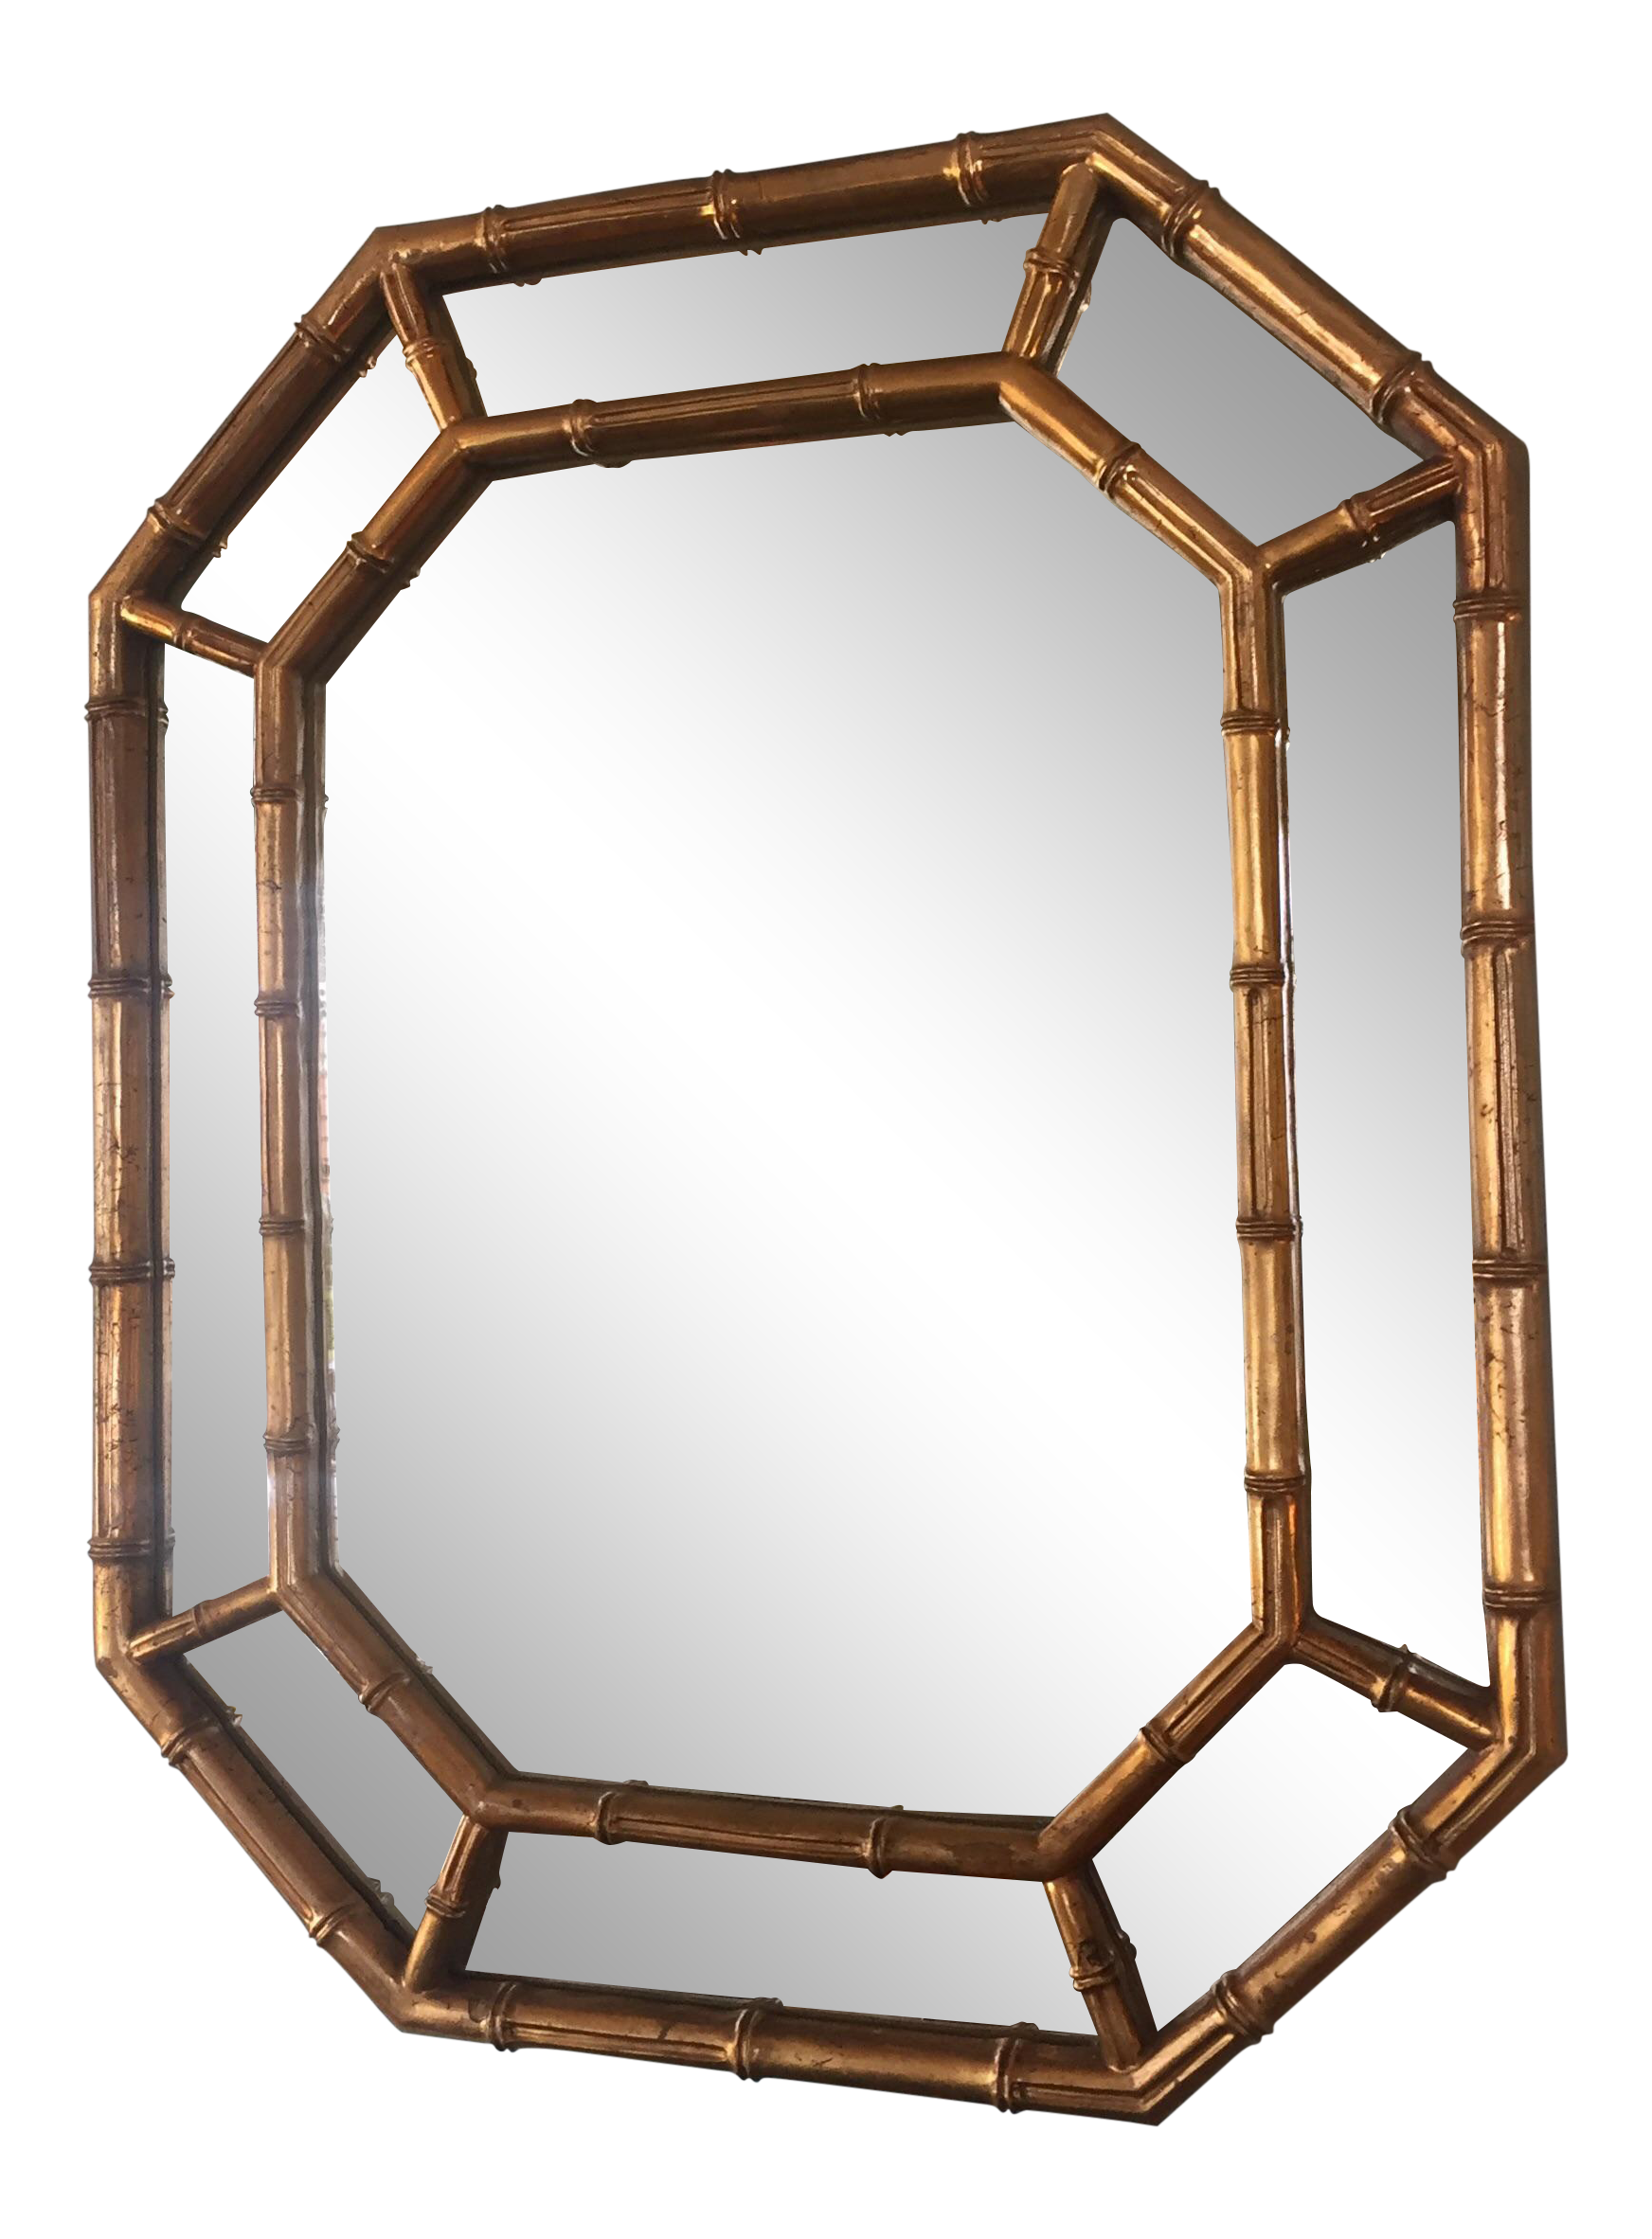 gold bamboo mirror. Gold Faux Bamboo Mirror - Image 1 Of 6 N